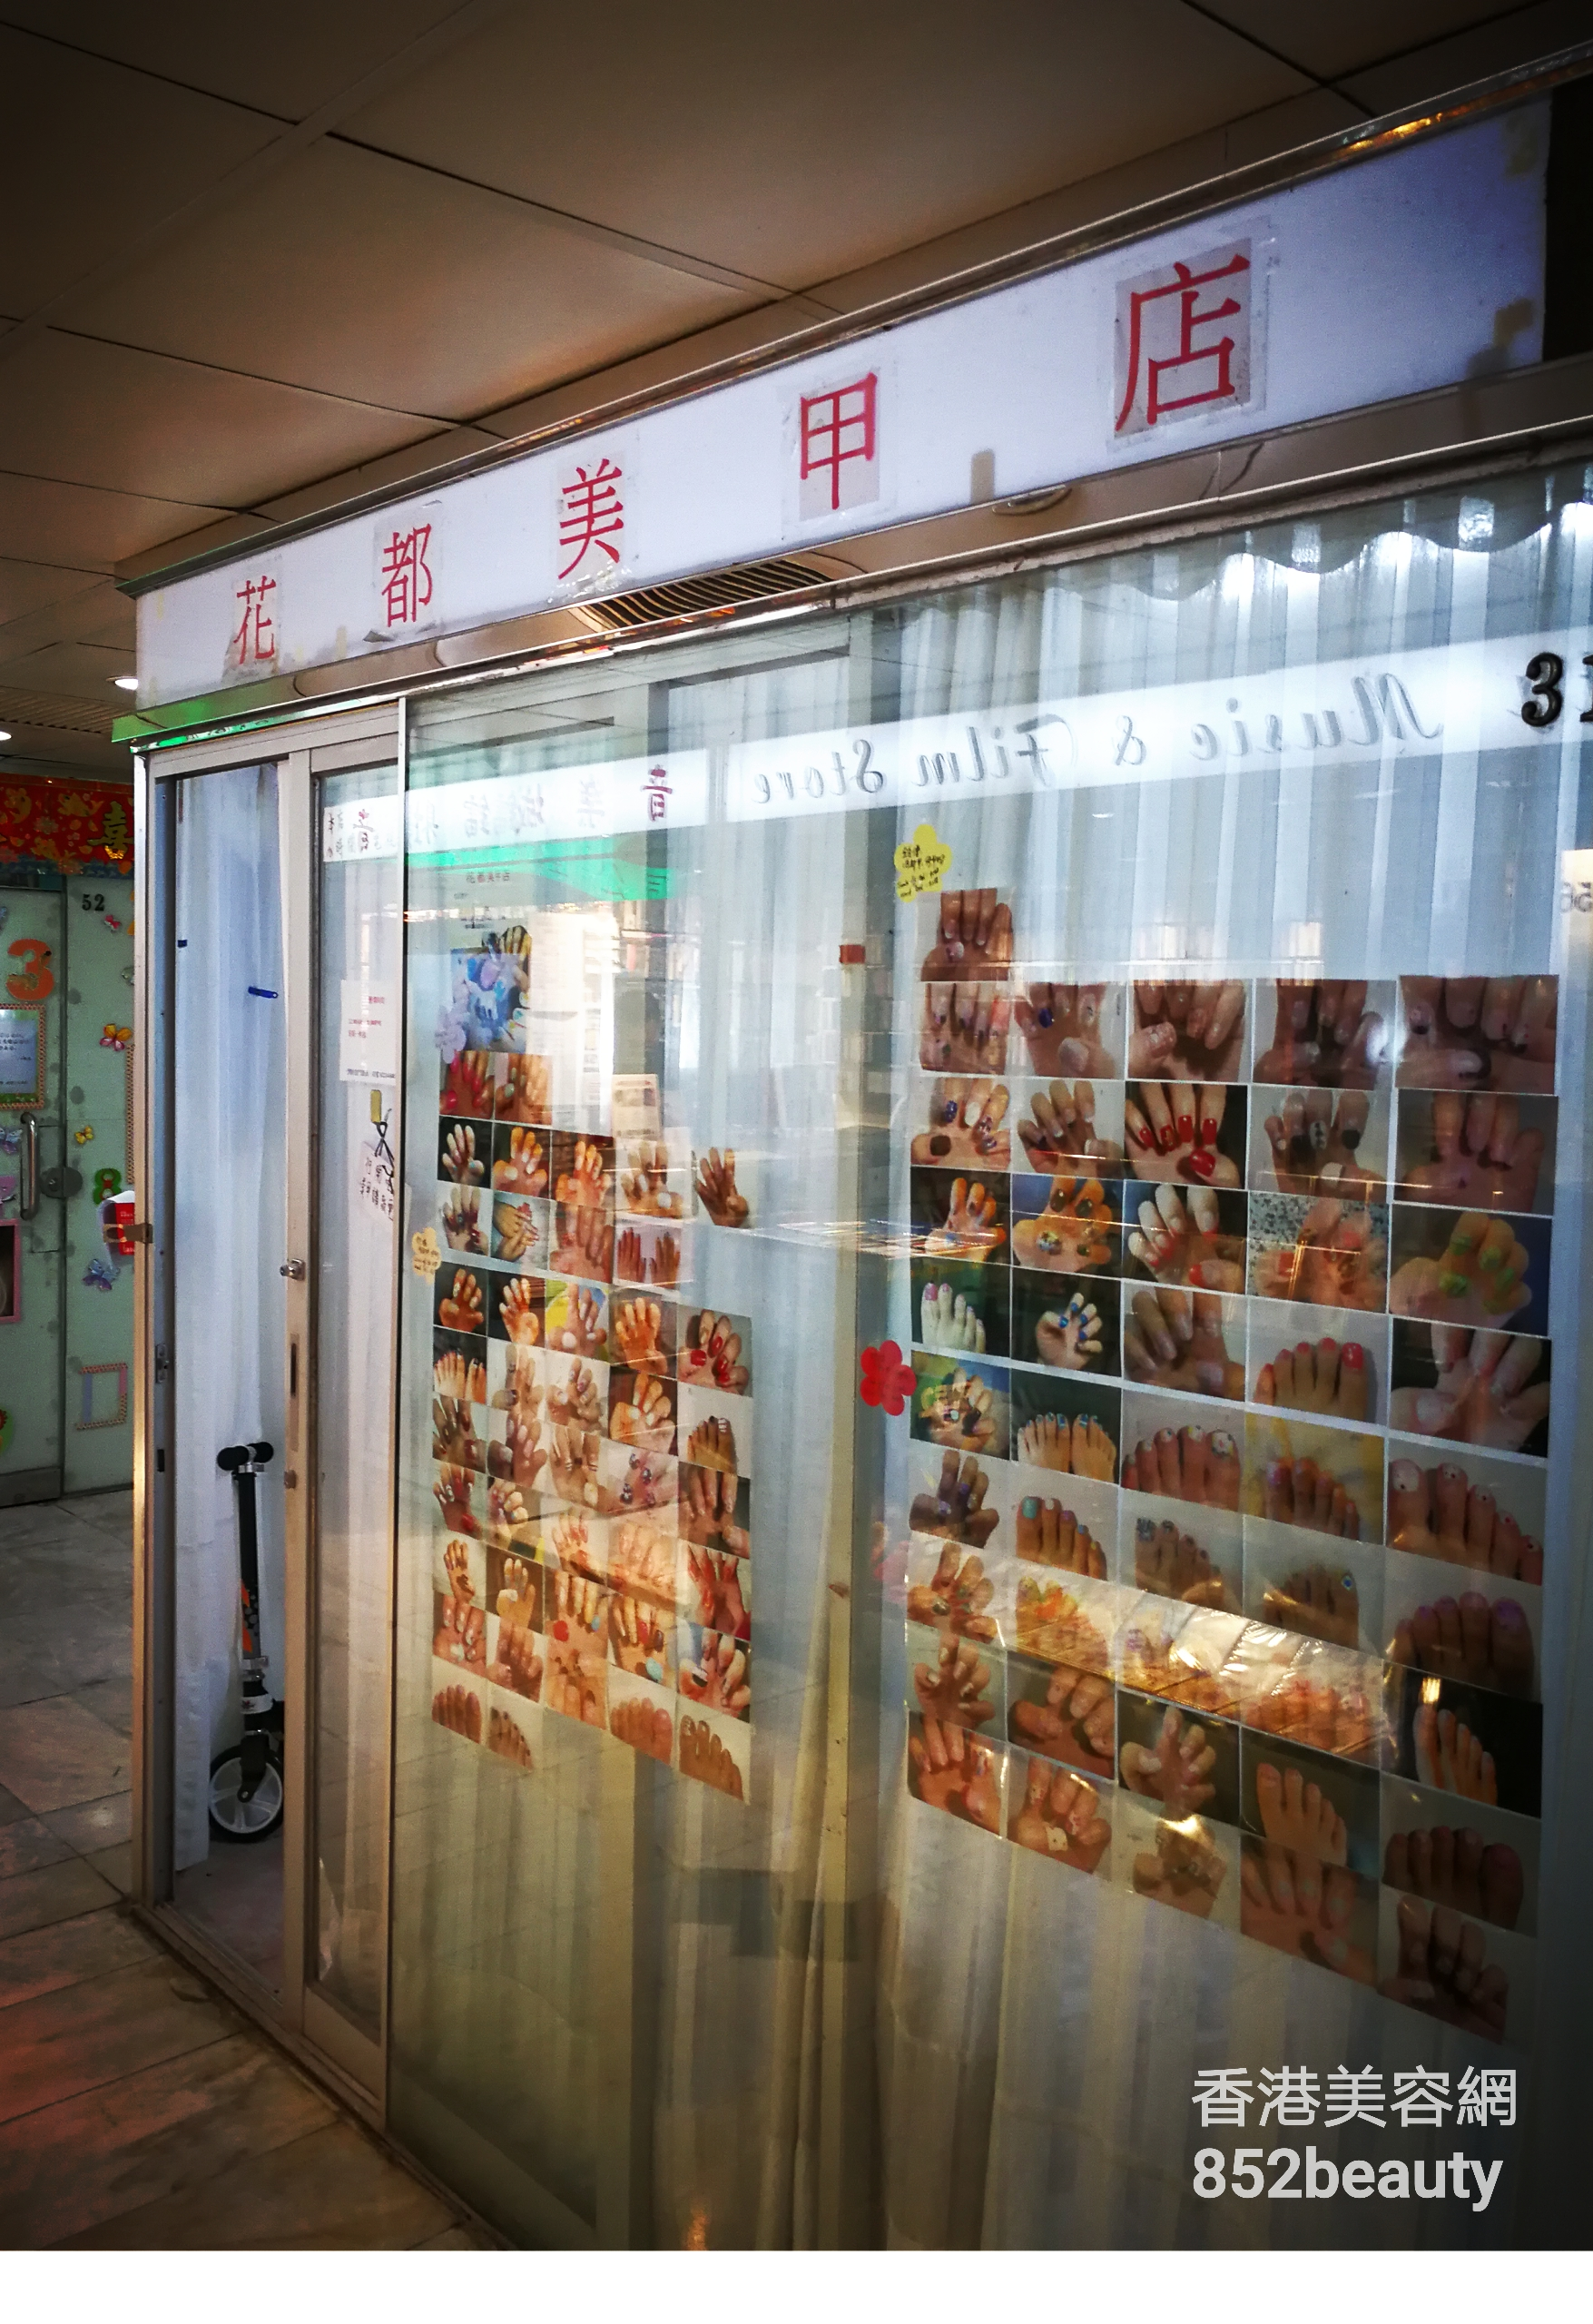 香港美容網 Hong Kong Beauty Salon 美容院 / 美容師: 花都美甲店